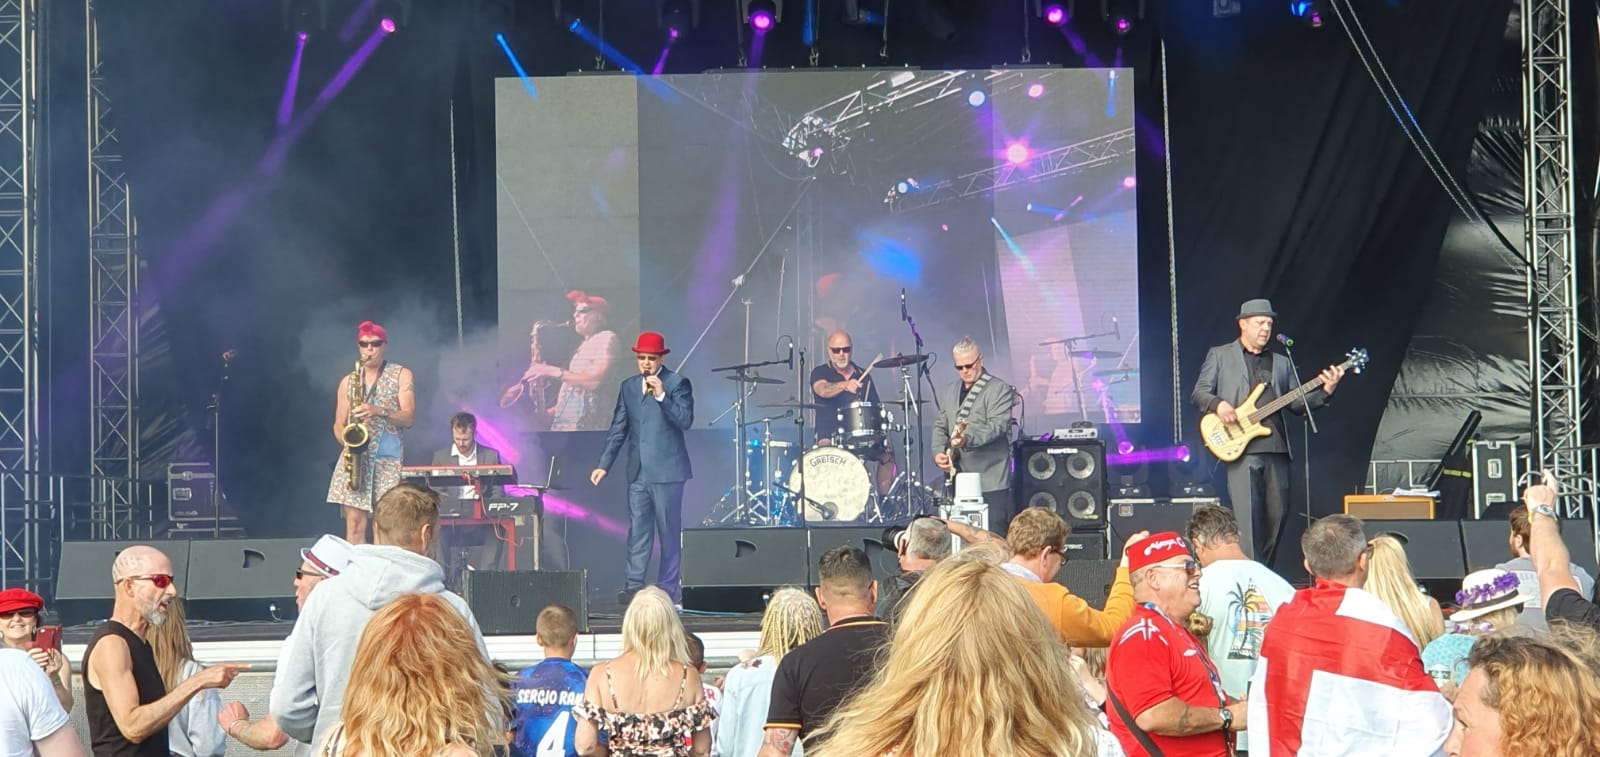 Madness Tribute Band - Los Palmas 6 - The Group